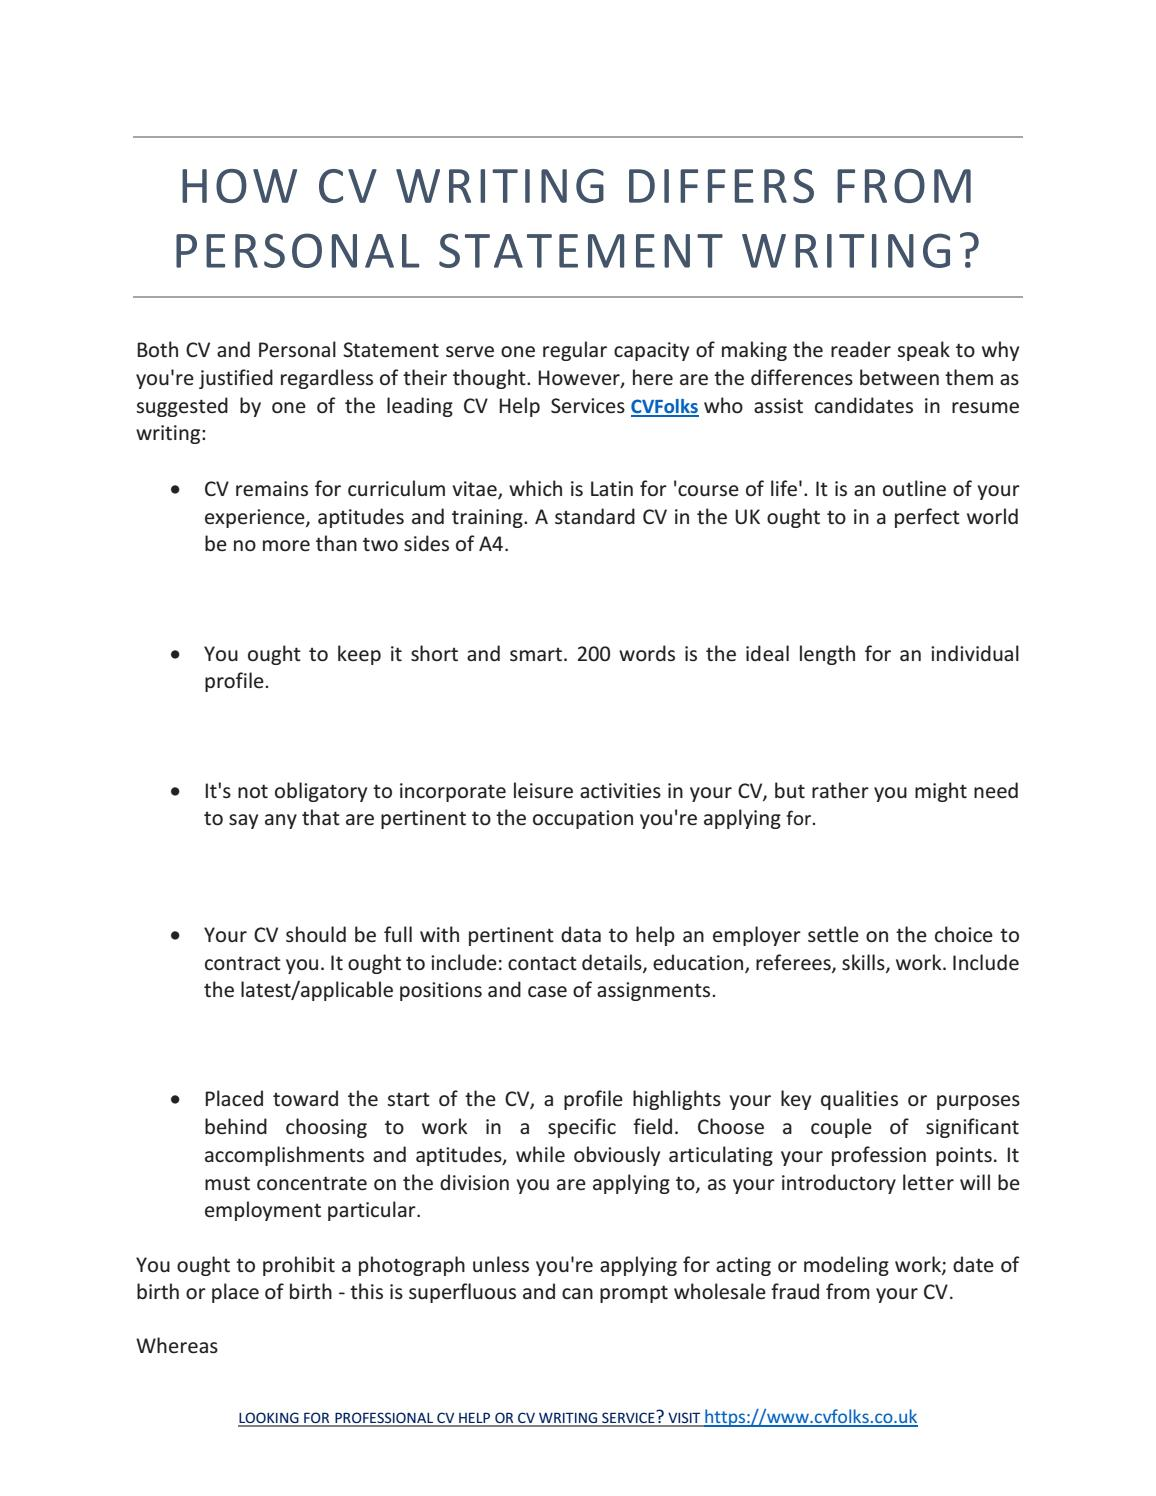 how to write my personal statement for cv